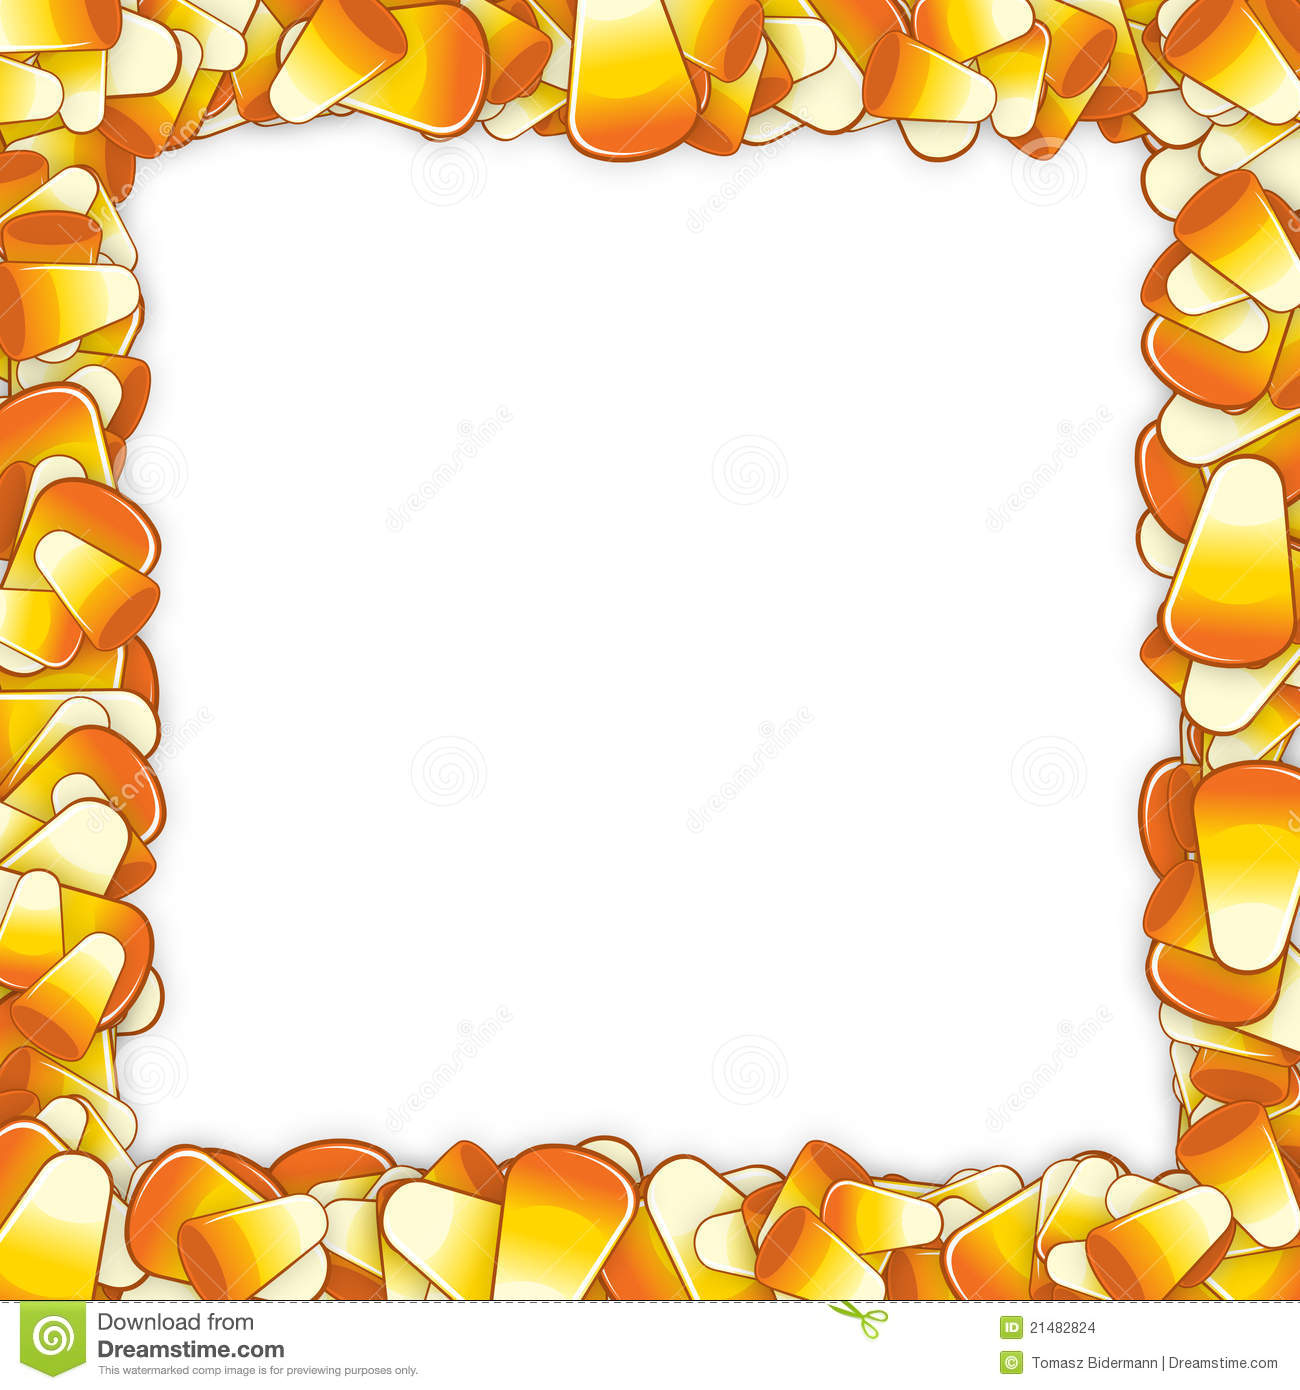 Candy PNG HD Border Transparent Candy HD Border.PNG Images.